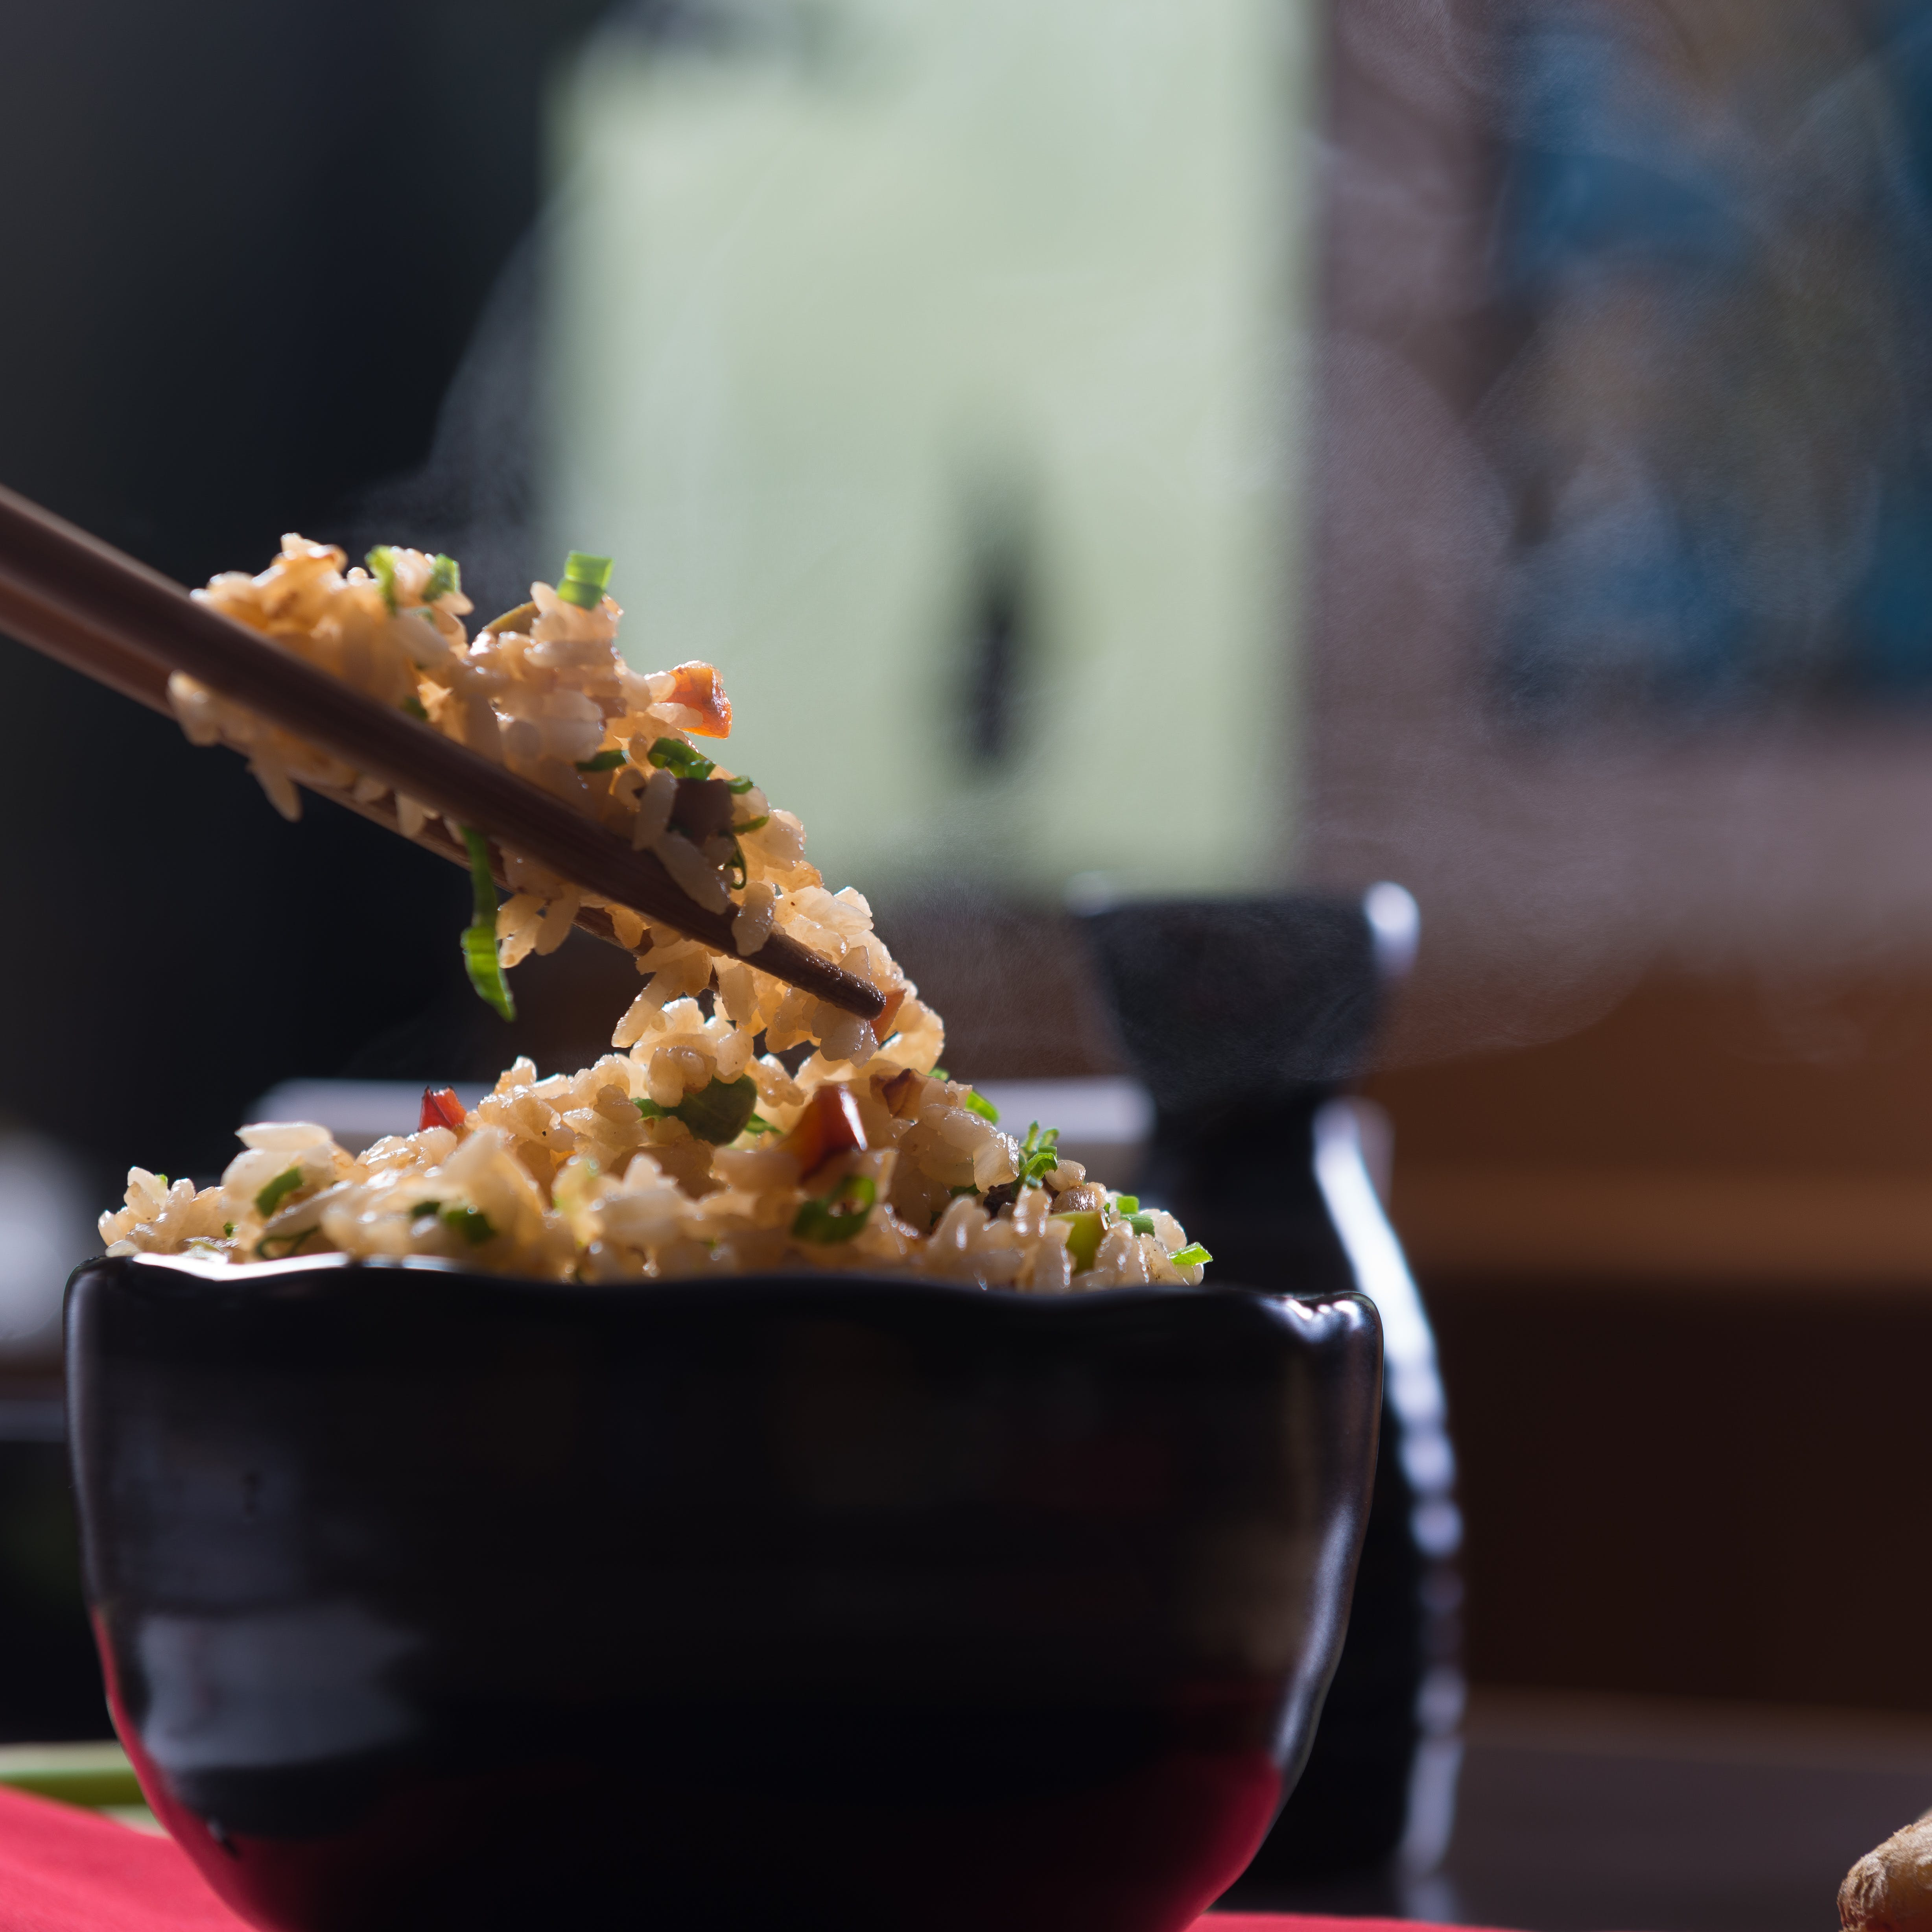 Selective Focus Photography of Fried Rice in Bowl